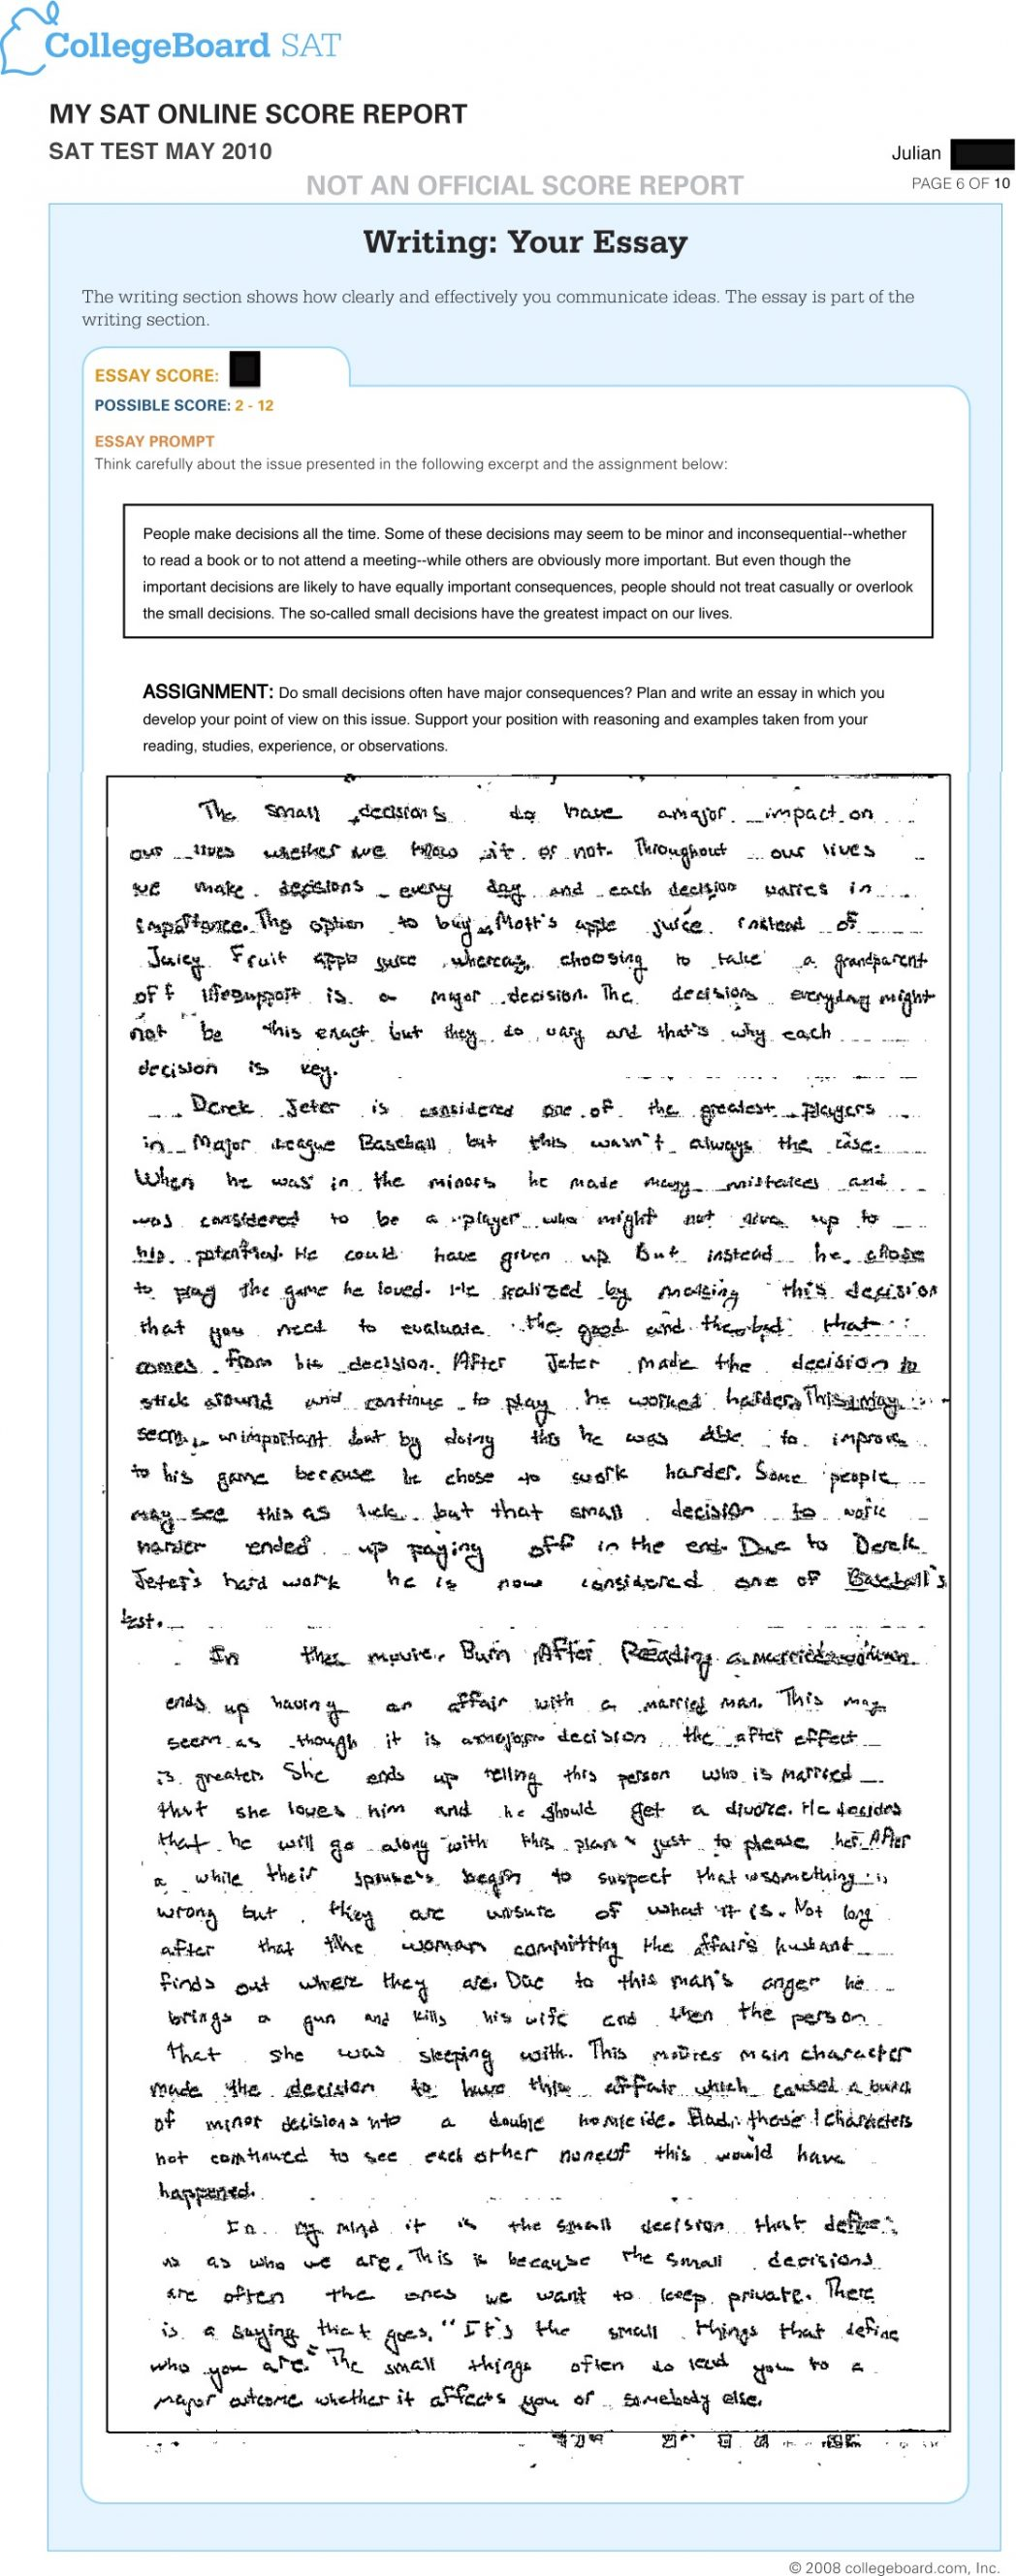 007 Essay Example Does The Sat Affect Your Score Scoring What Is Out Of Writing How To Write Good Introduction Jr May Really Intro Perfect Conclusion Stupendous 2016 Full